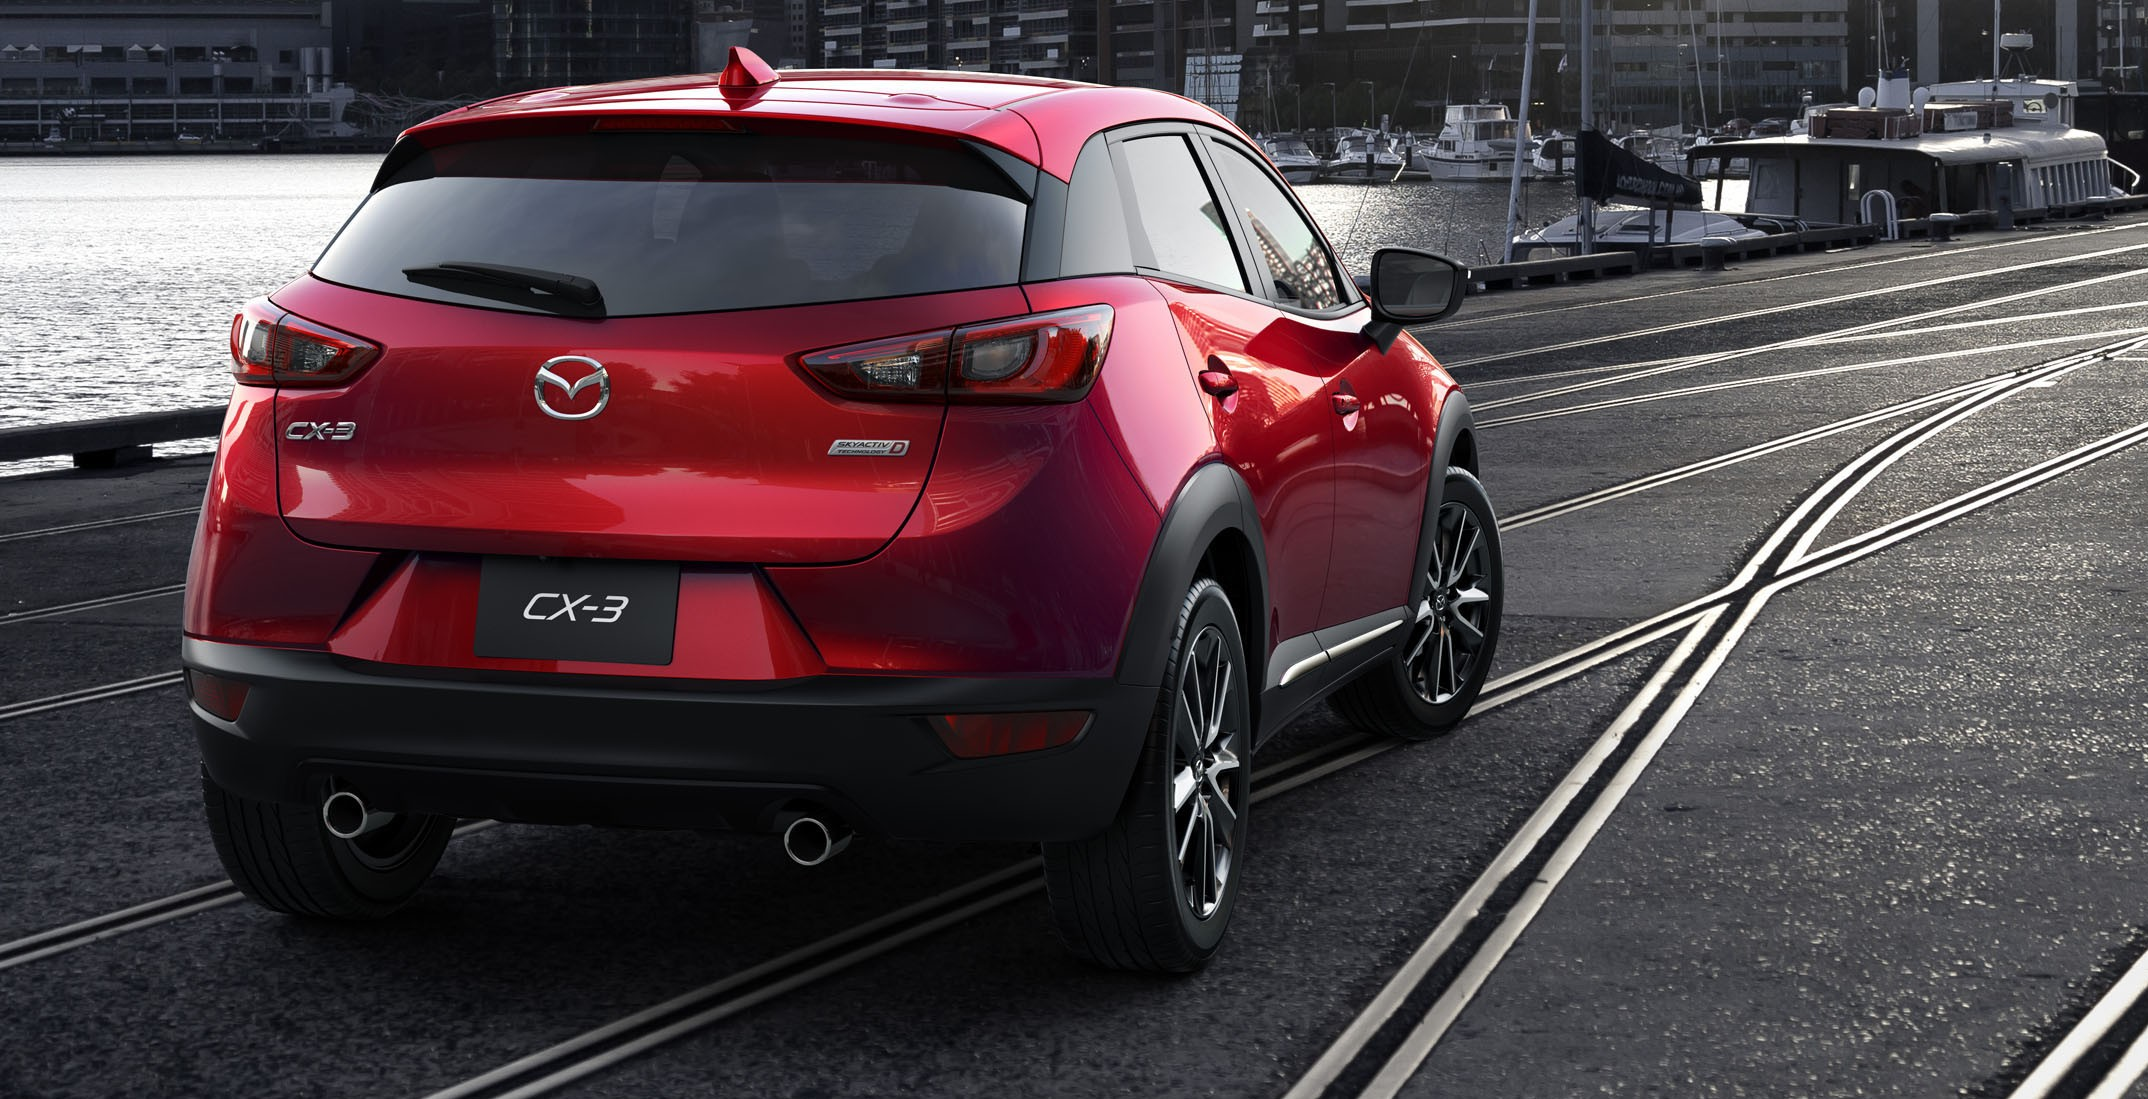 mazda cx 3 new b segment suv officially unveiled image 289201. Black Bedroom Furniture Sets. Home Design Ideas